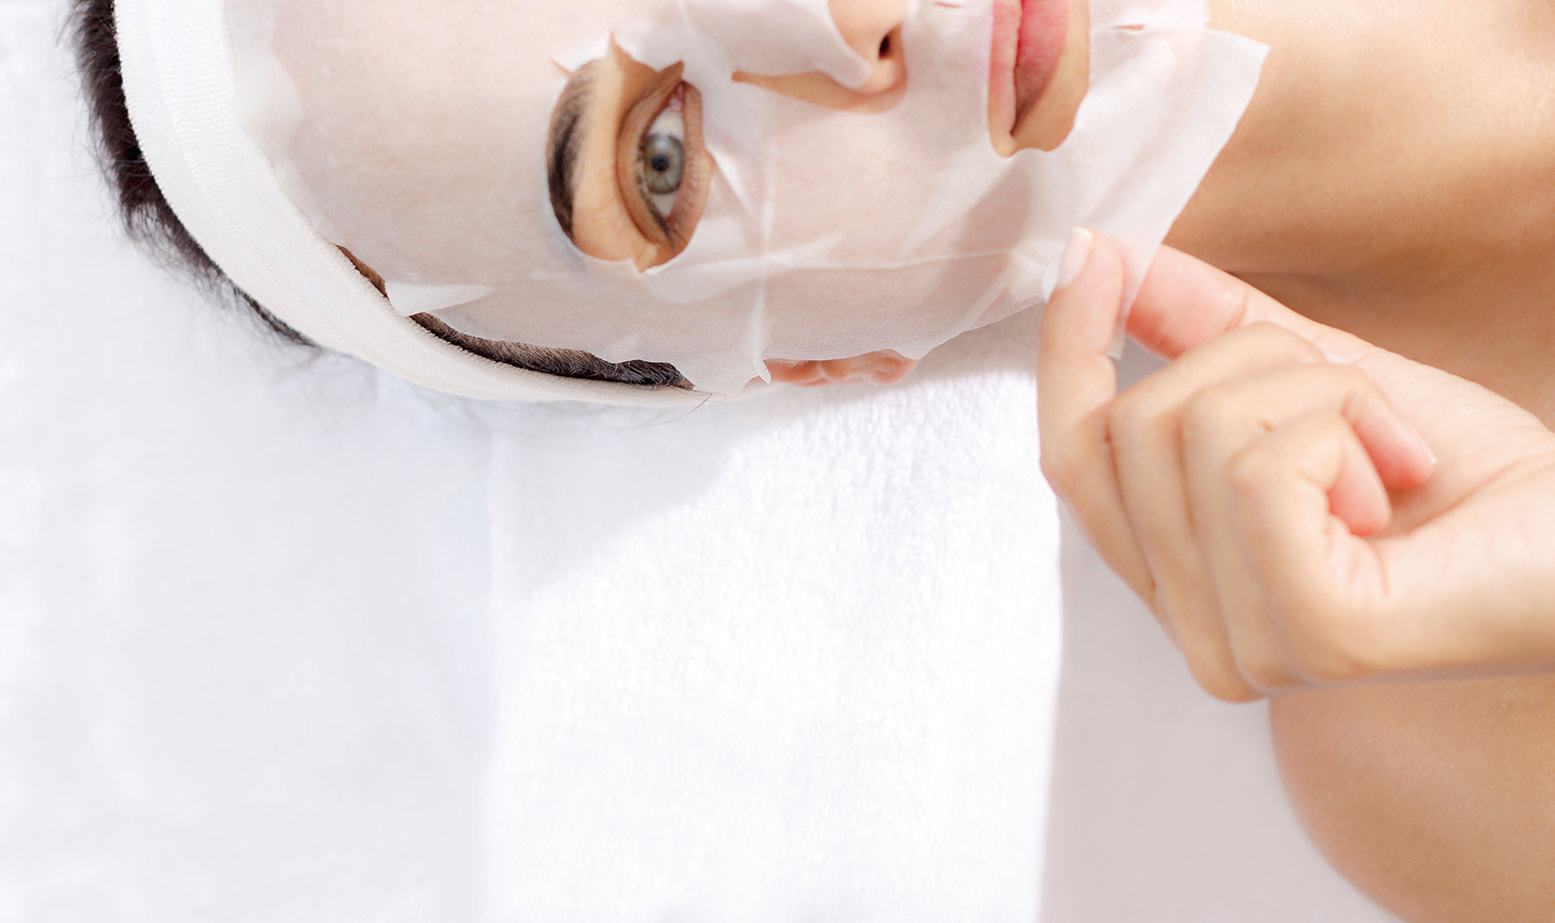 Choose More Eco-Friendly Face Mask Options